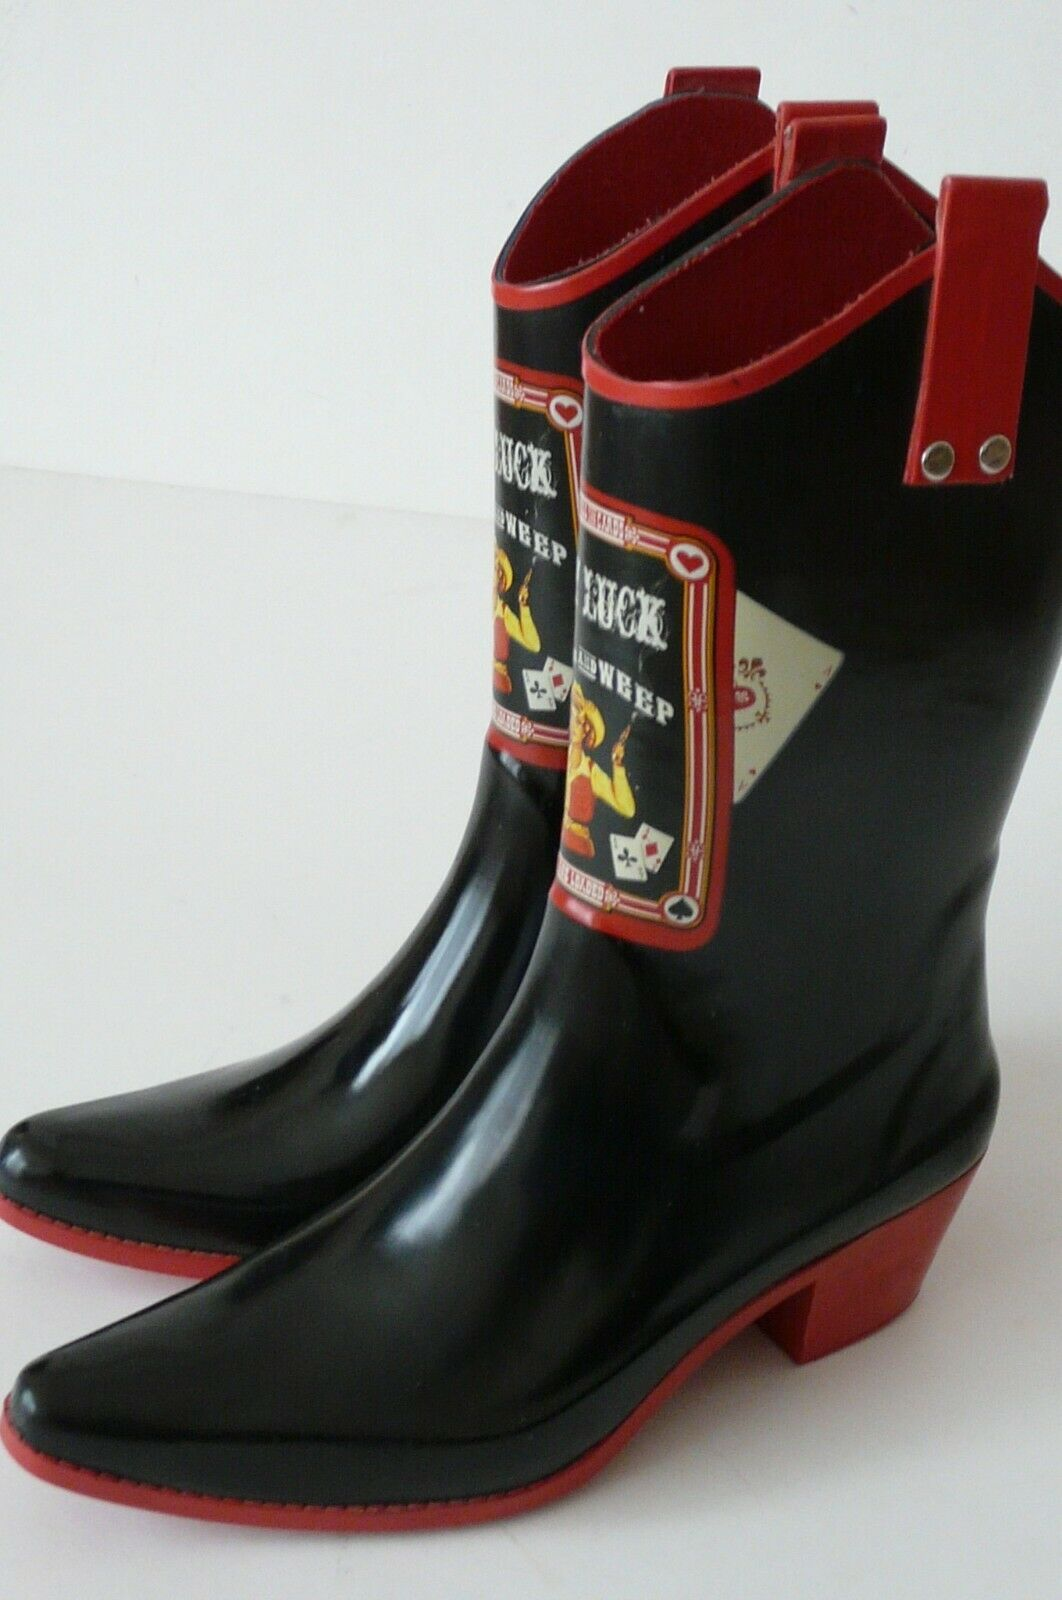 NOMAD LADY LUCK READ`EM AND WEEP BLACK RED TRIM RUBBER RAIN BOOTS  sz 9